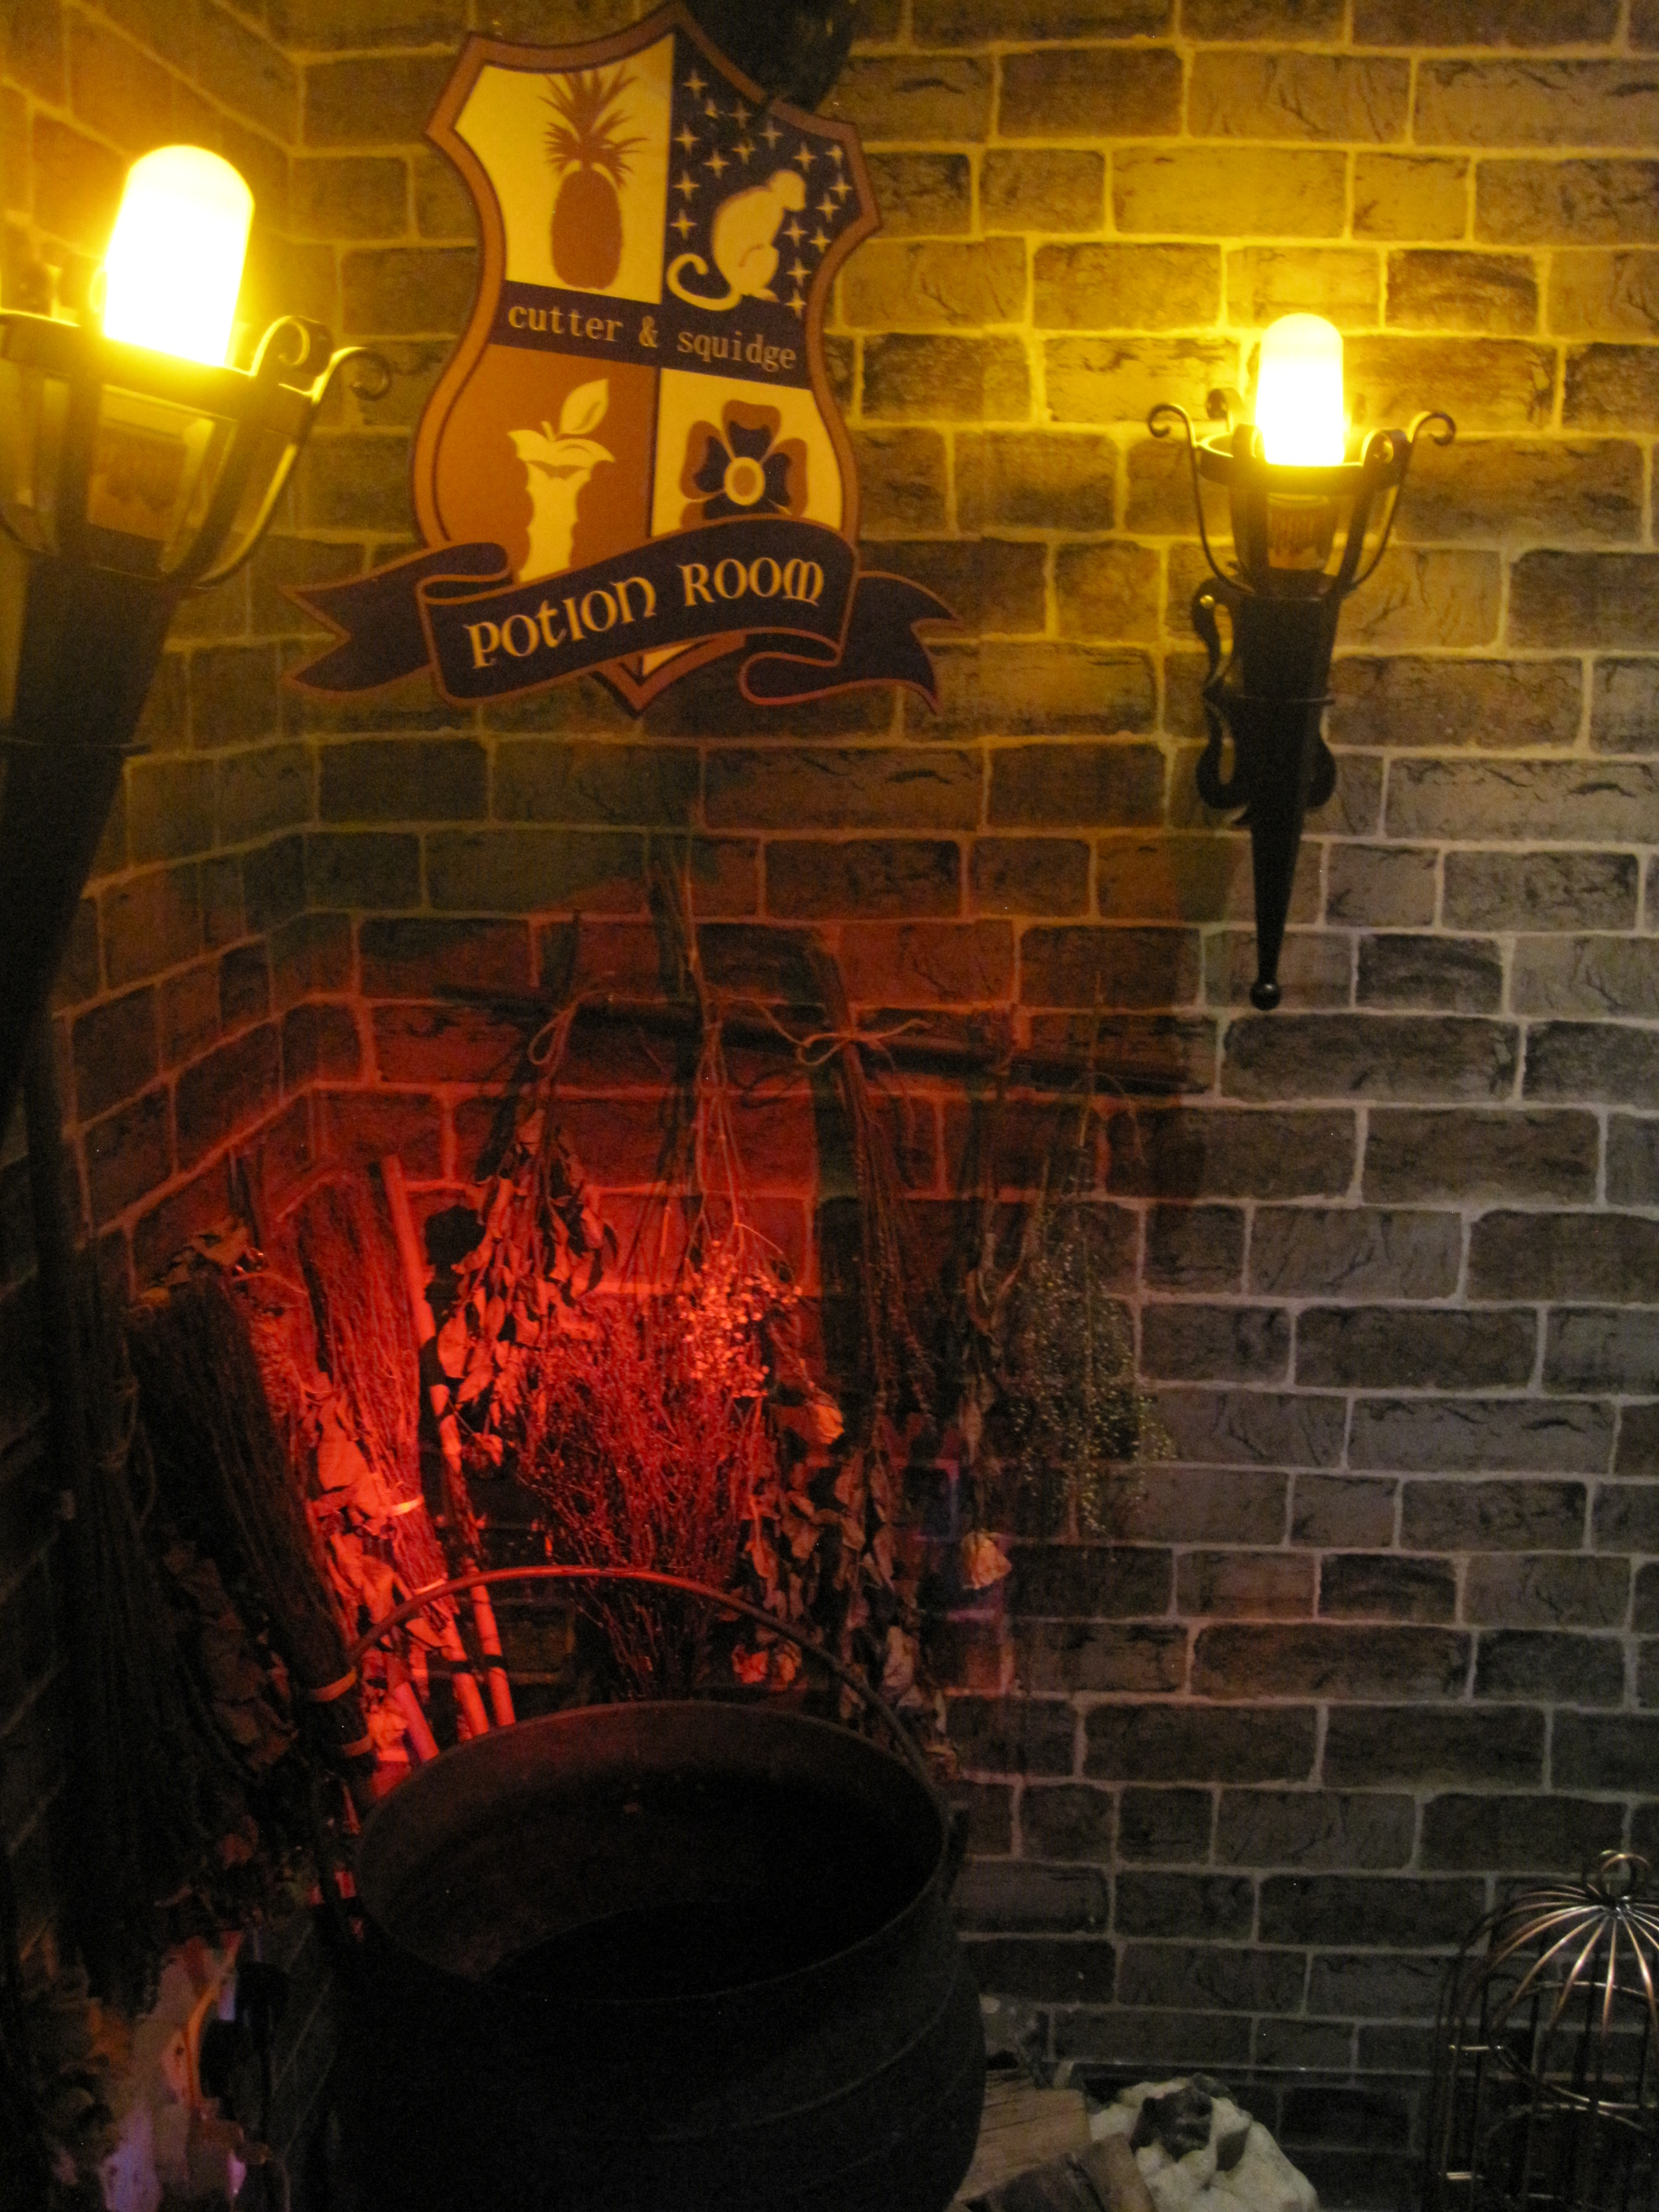 Entrance to potions room - photo by juliamaud